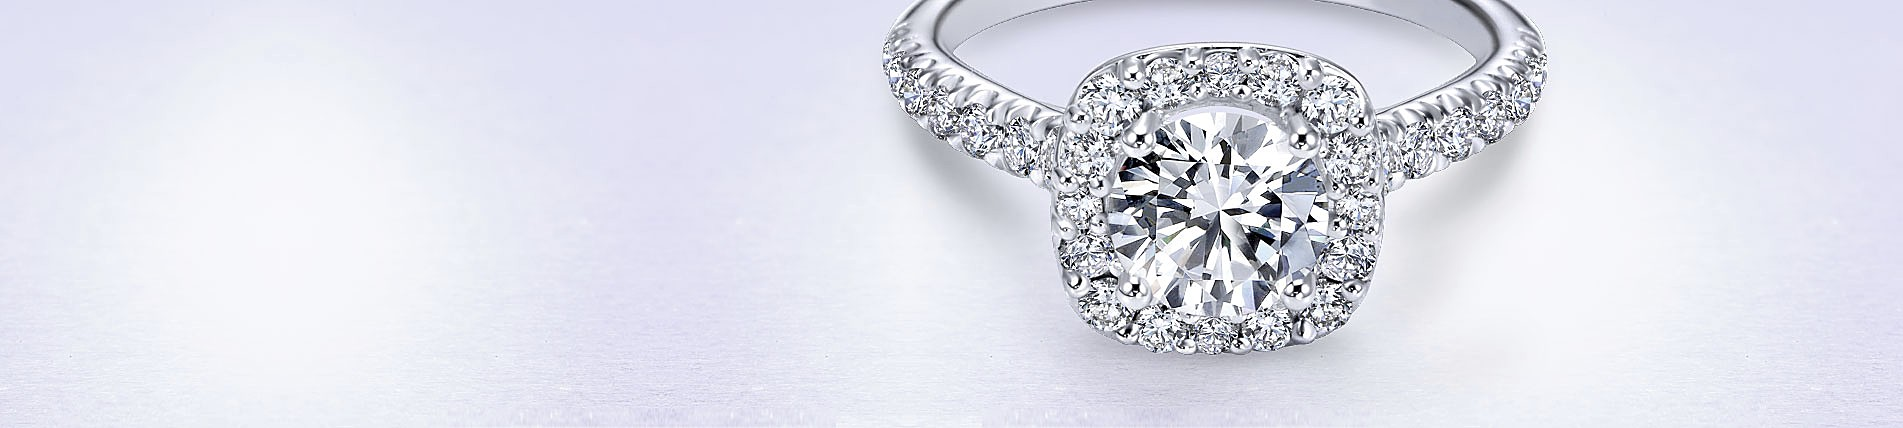 Accommodating A Wide Range Of Center Stone Shapes And Colors, Halo Engagement  Rings Are Adaptable To Every Style And Accessible On Any Budget